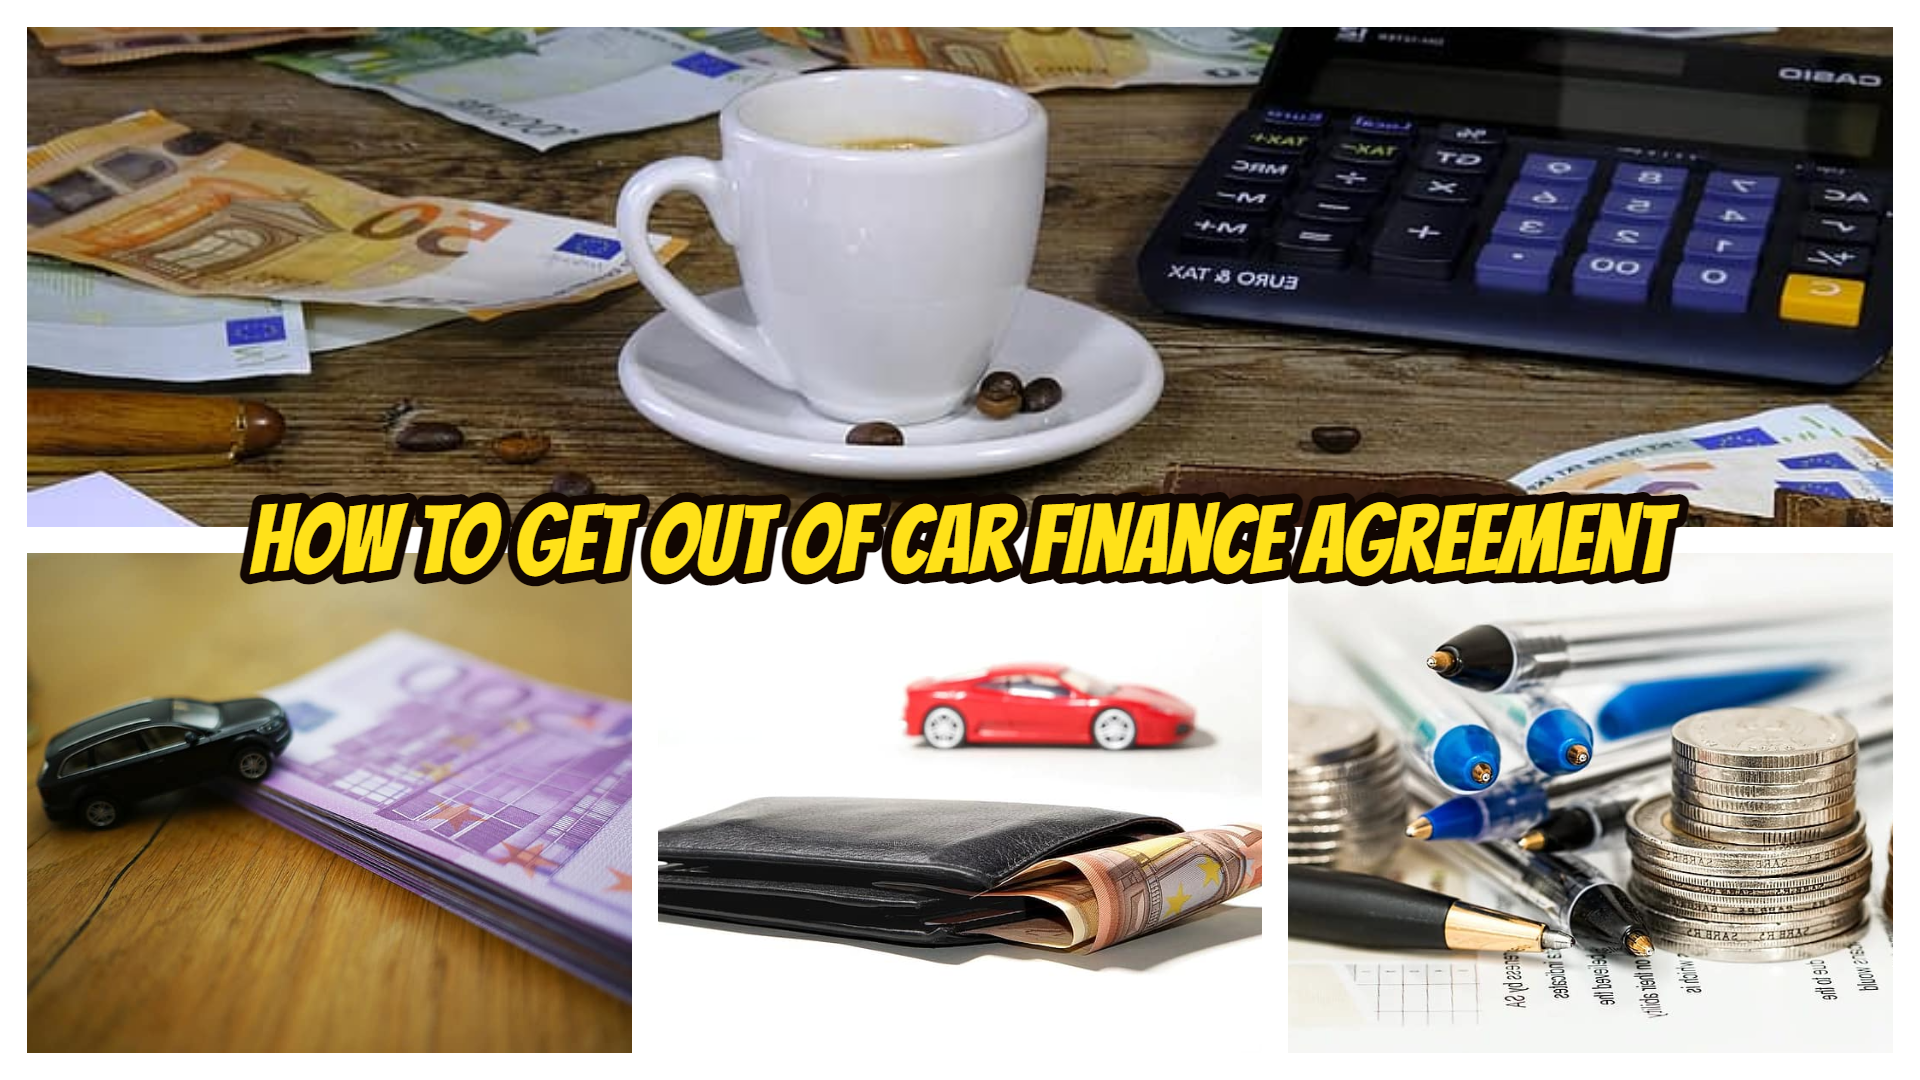 How to Get Out of Car Finance Agreement